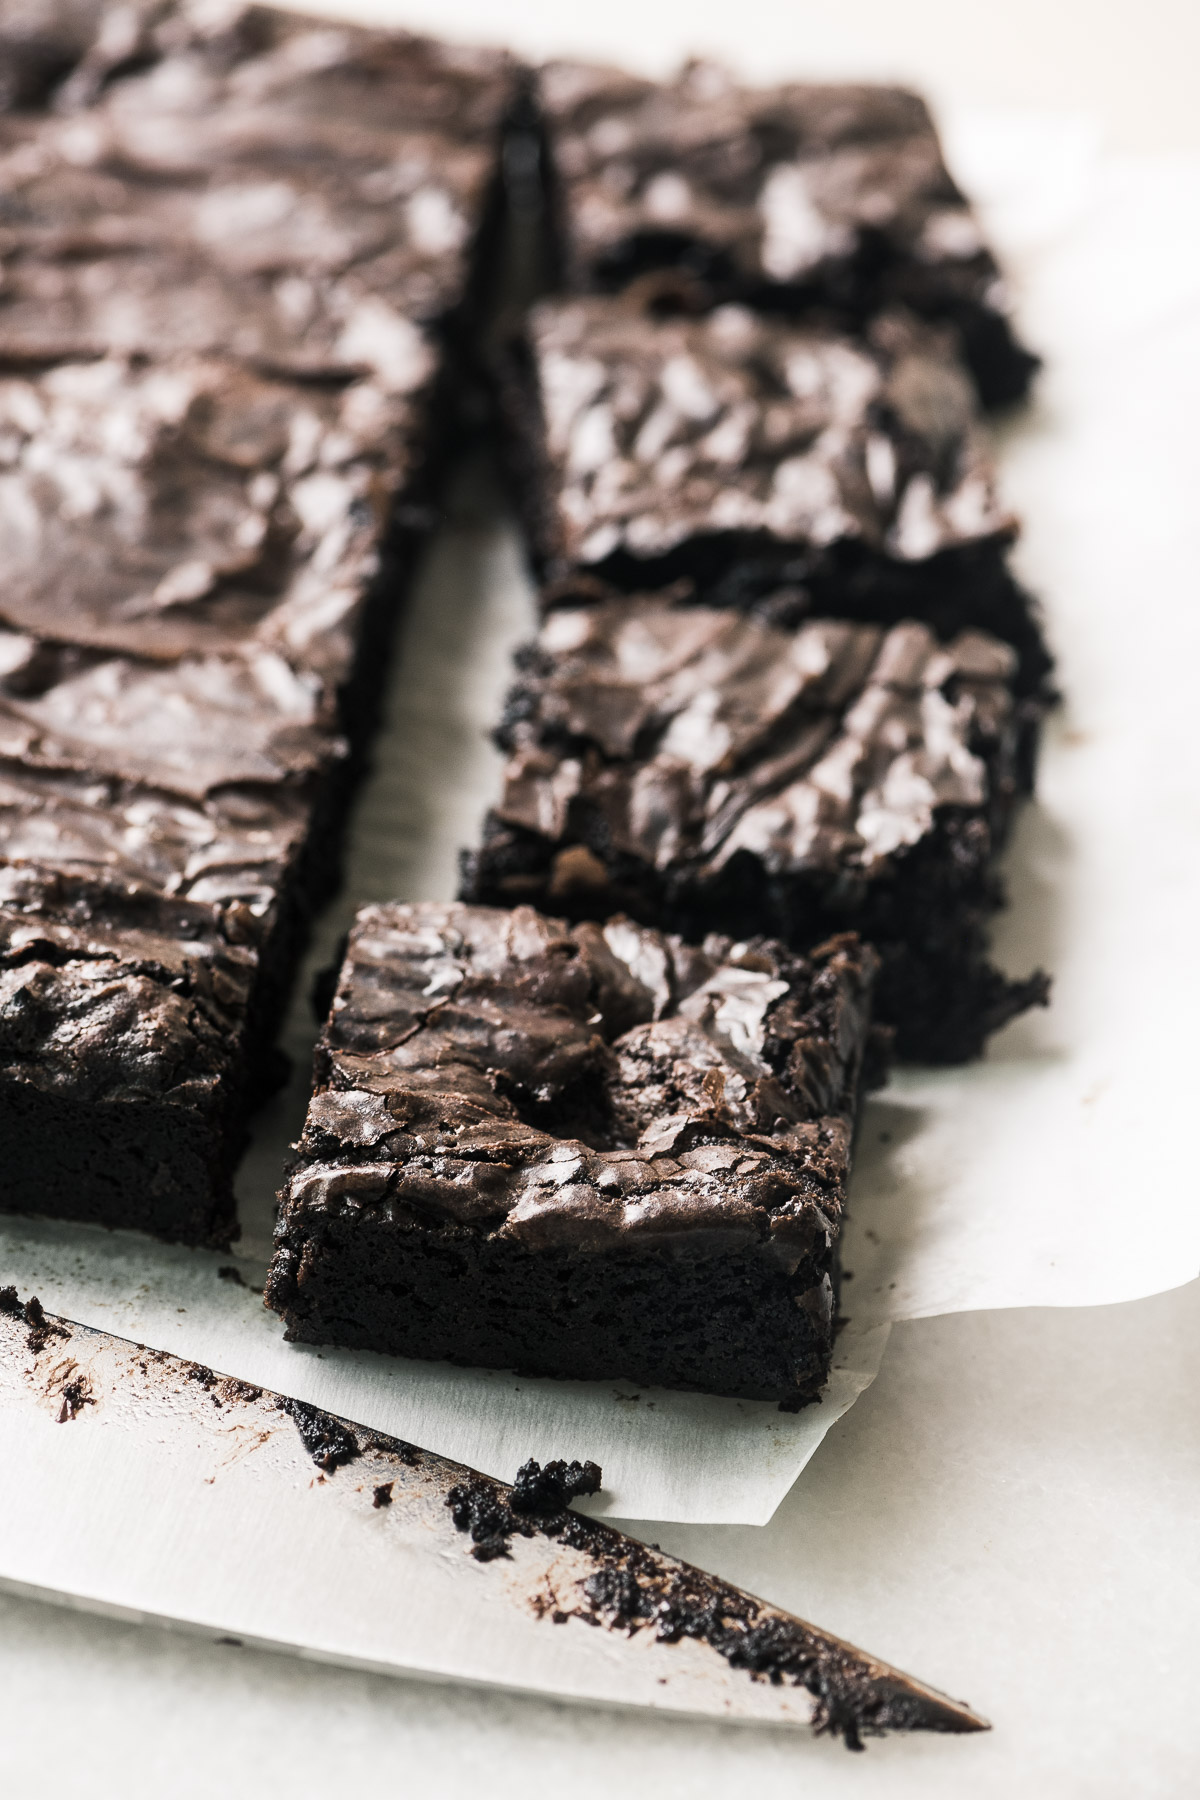 I Want to Marry You Brownies sliced, with a knife